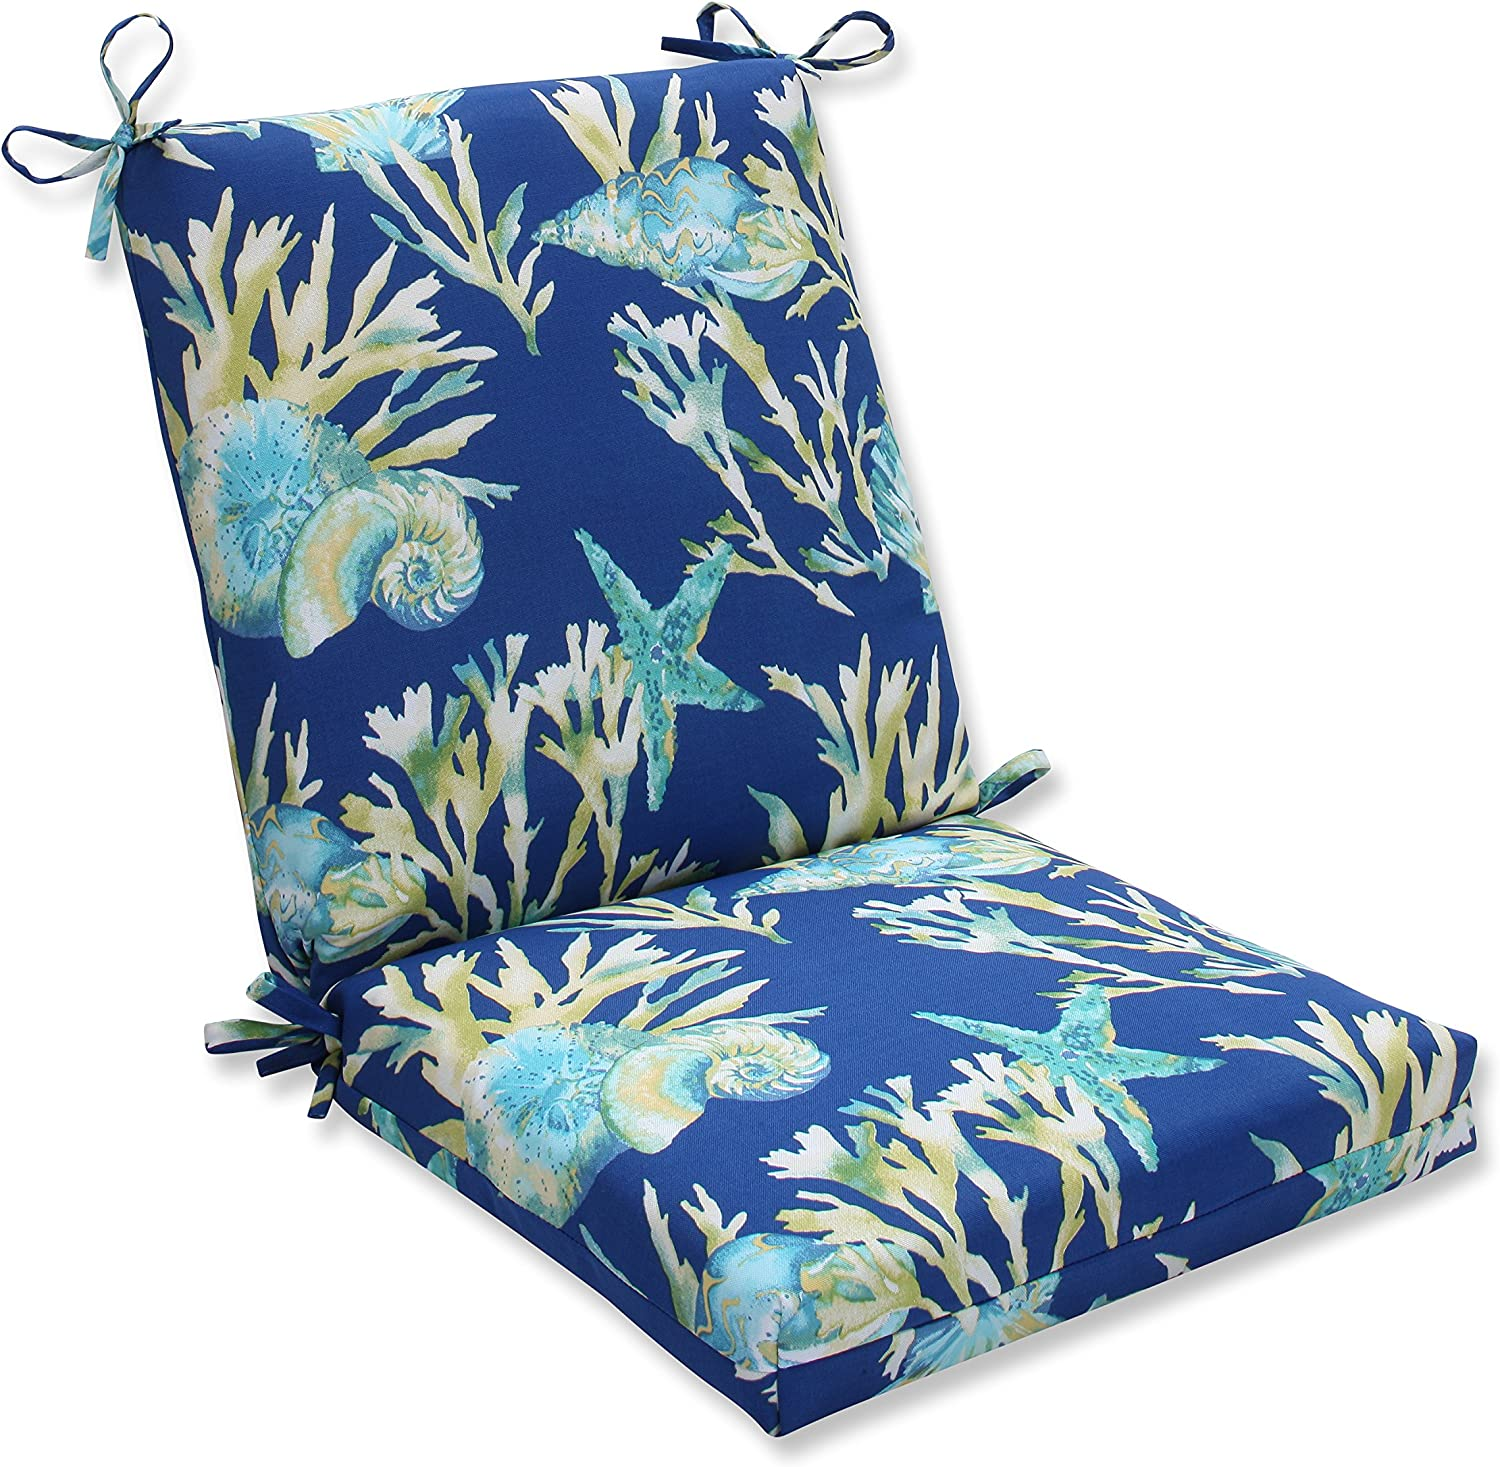 Pillow Perfect Outdoor Indoor Daytrip Pacific Squared Corners Chair Cushion